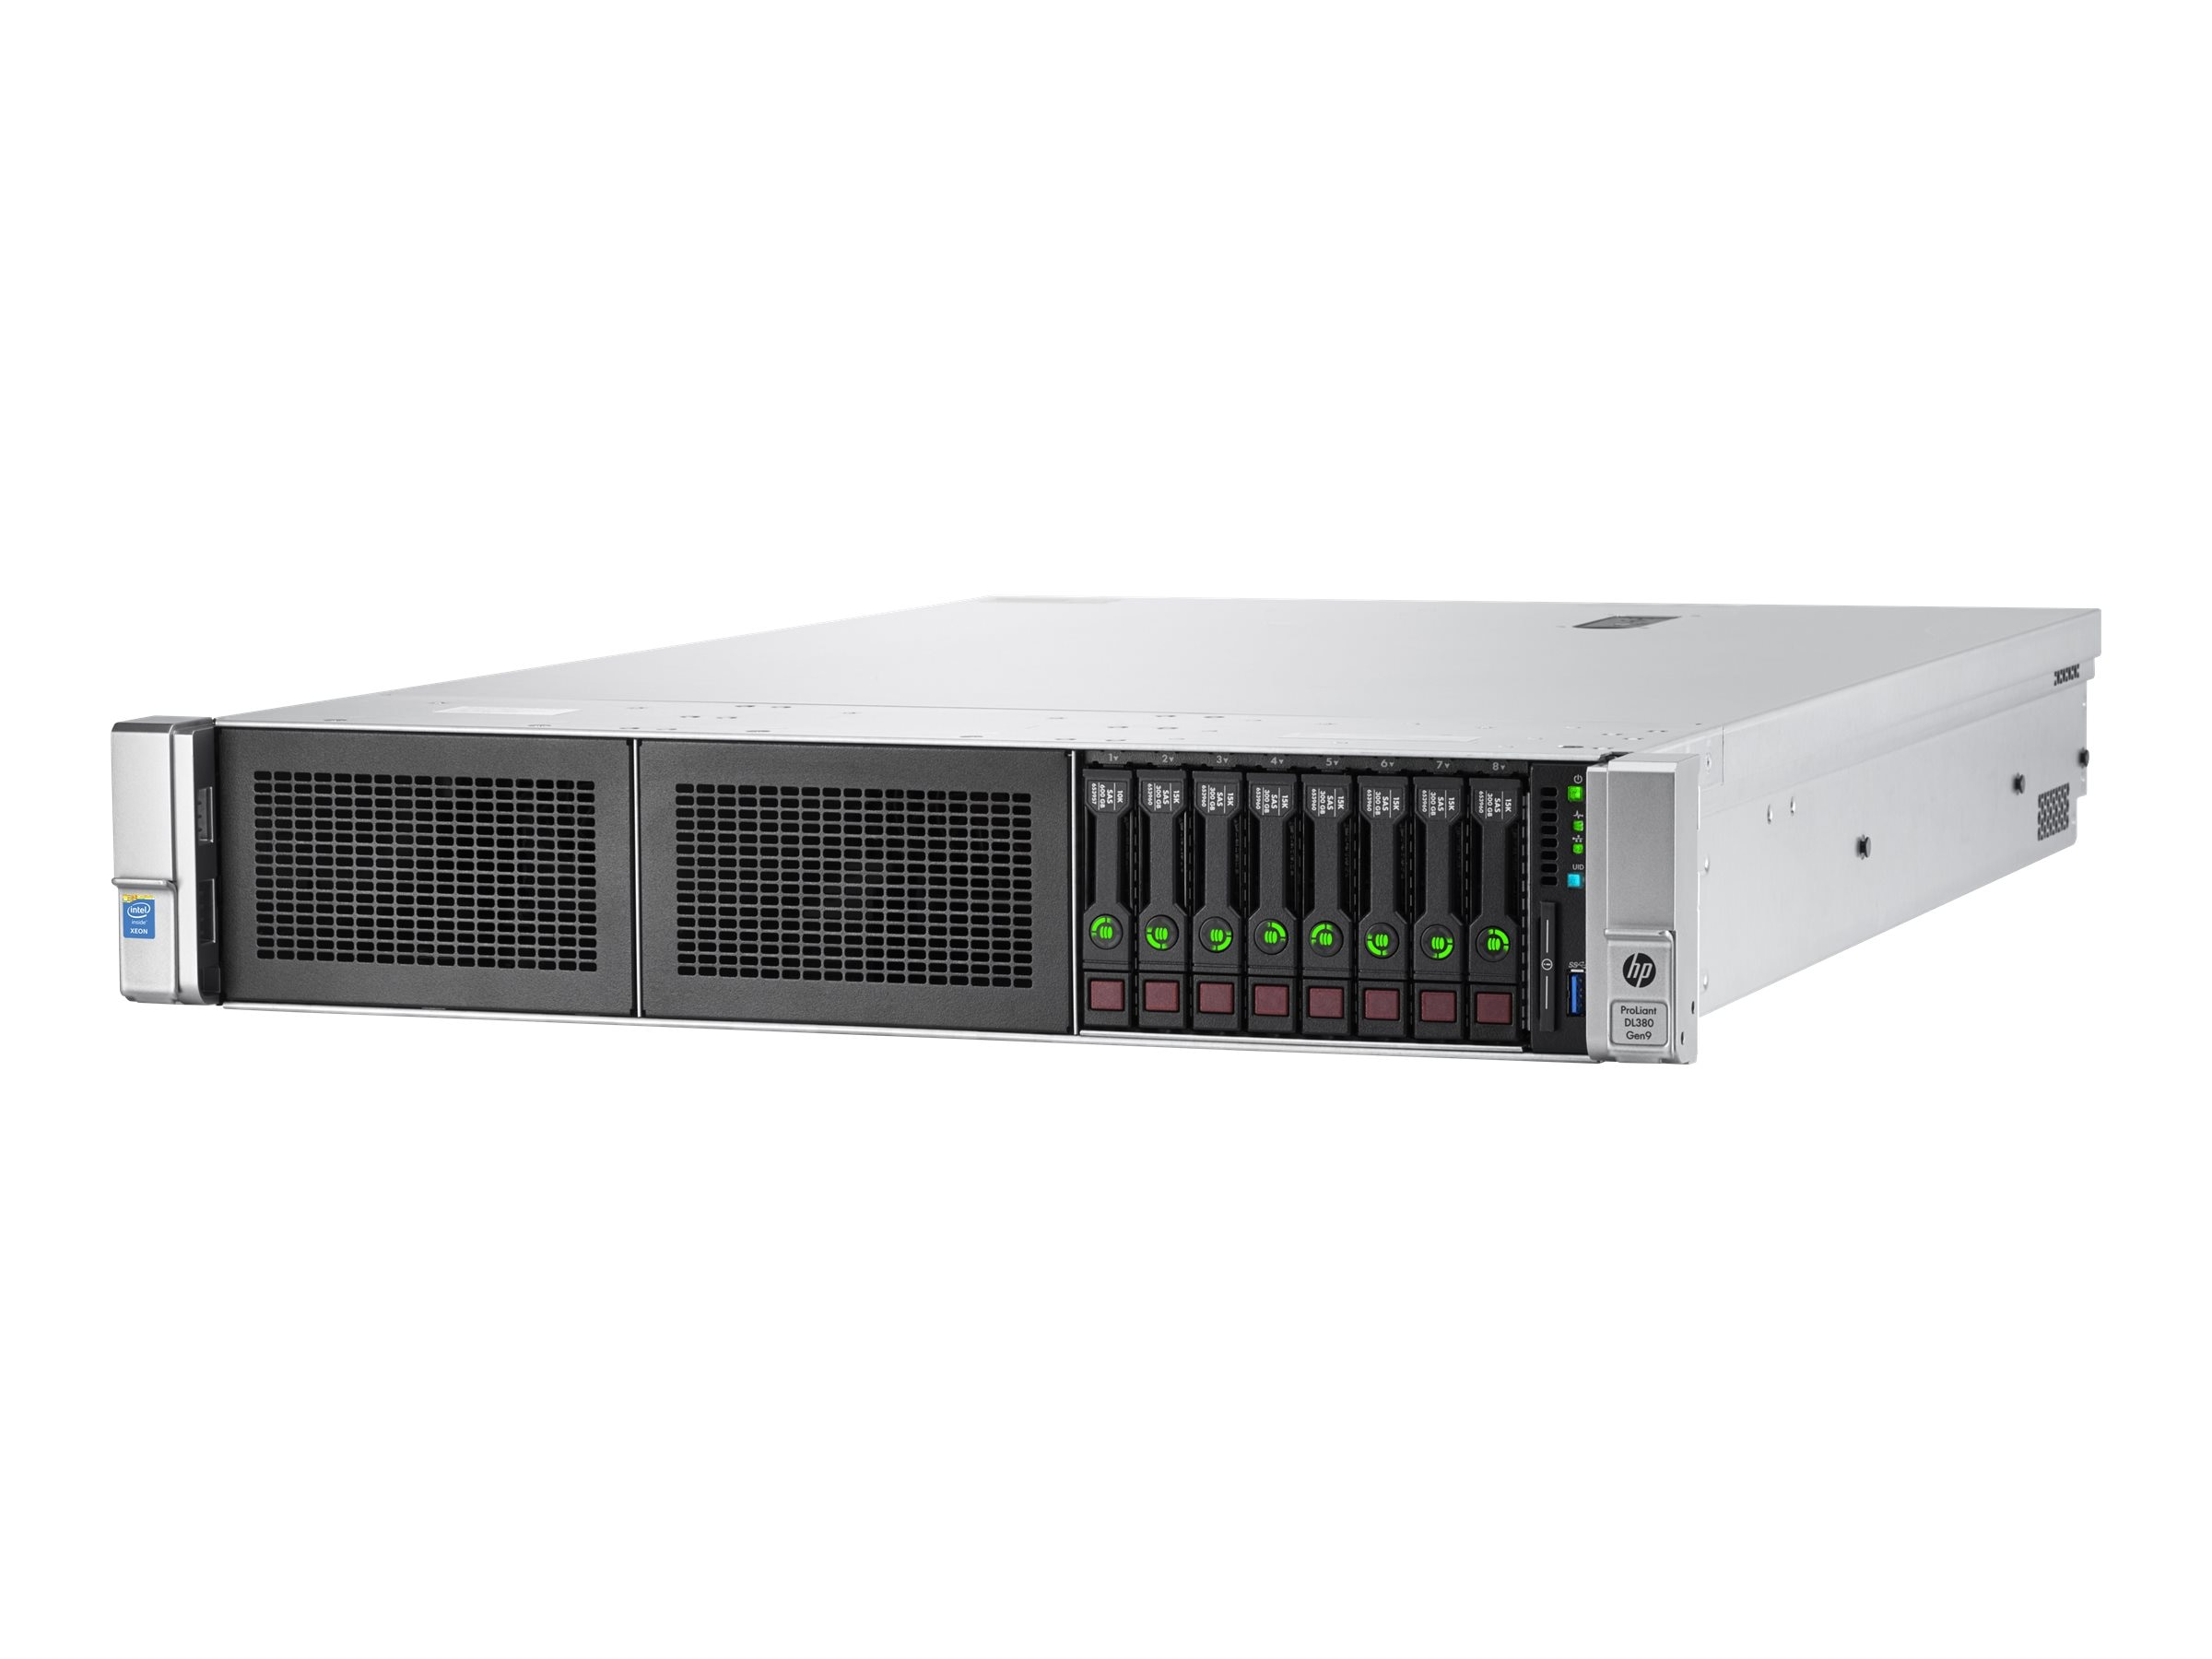 HPE Smart Buy ProLiant DL380 Gen9 Intel 2.4GHz Xeon, 800073-S01, 18105708, Servers